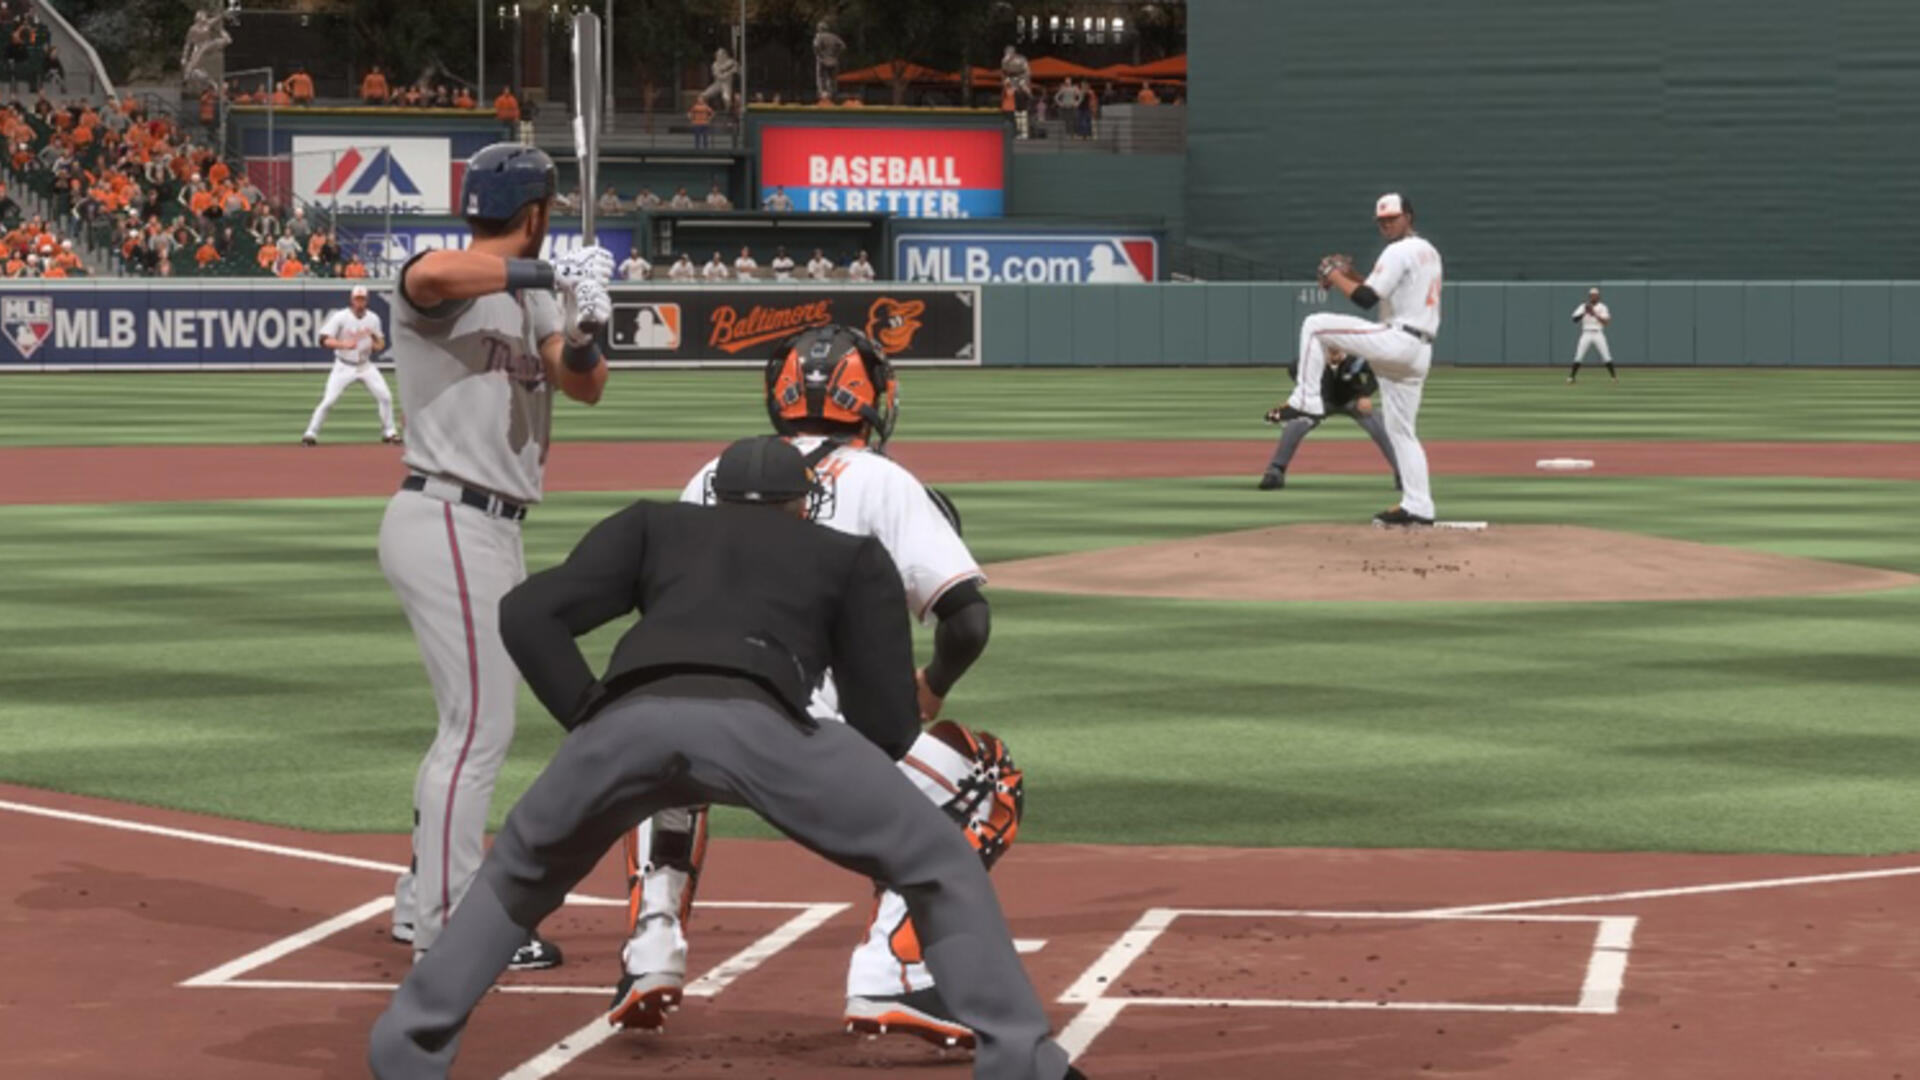 MLB 16 The Show PlayStation 4 Review: Building a Diamond Dynasty